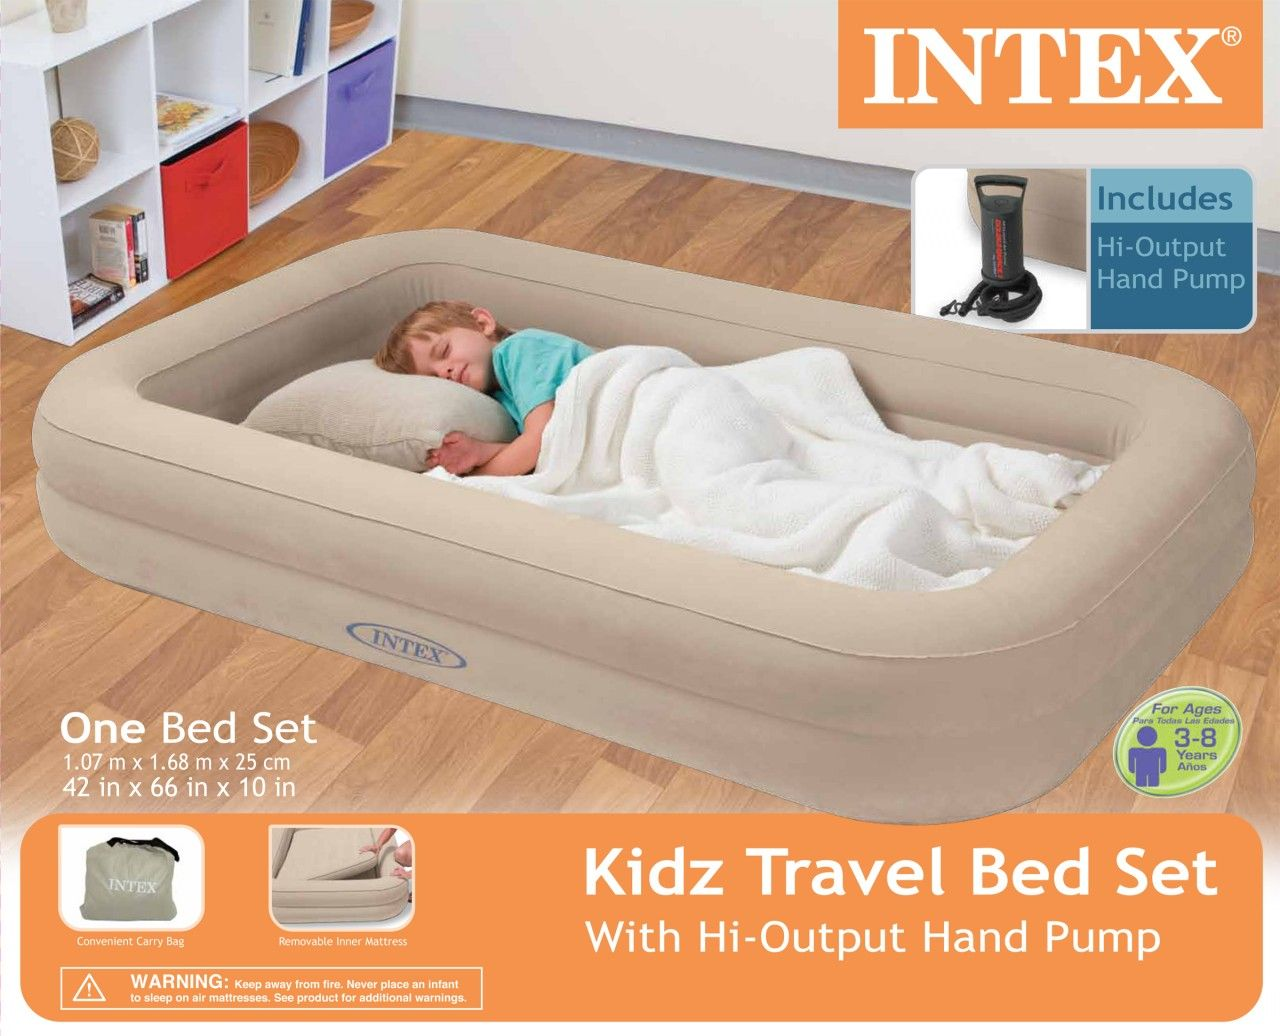 Baby bed camping - Intex Travel Bed Kids Child Inflatable Airbed Toddler Portable Air Bed Camping In Home Garden Furniture Beds Mattresses